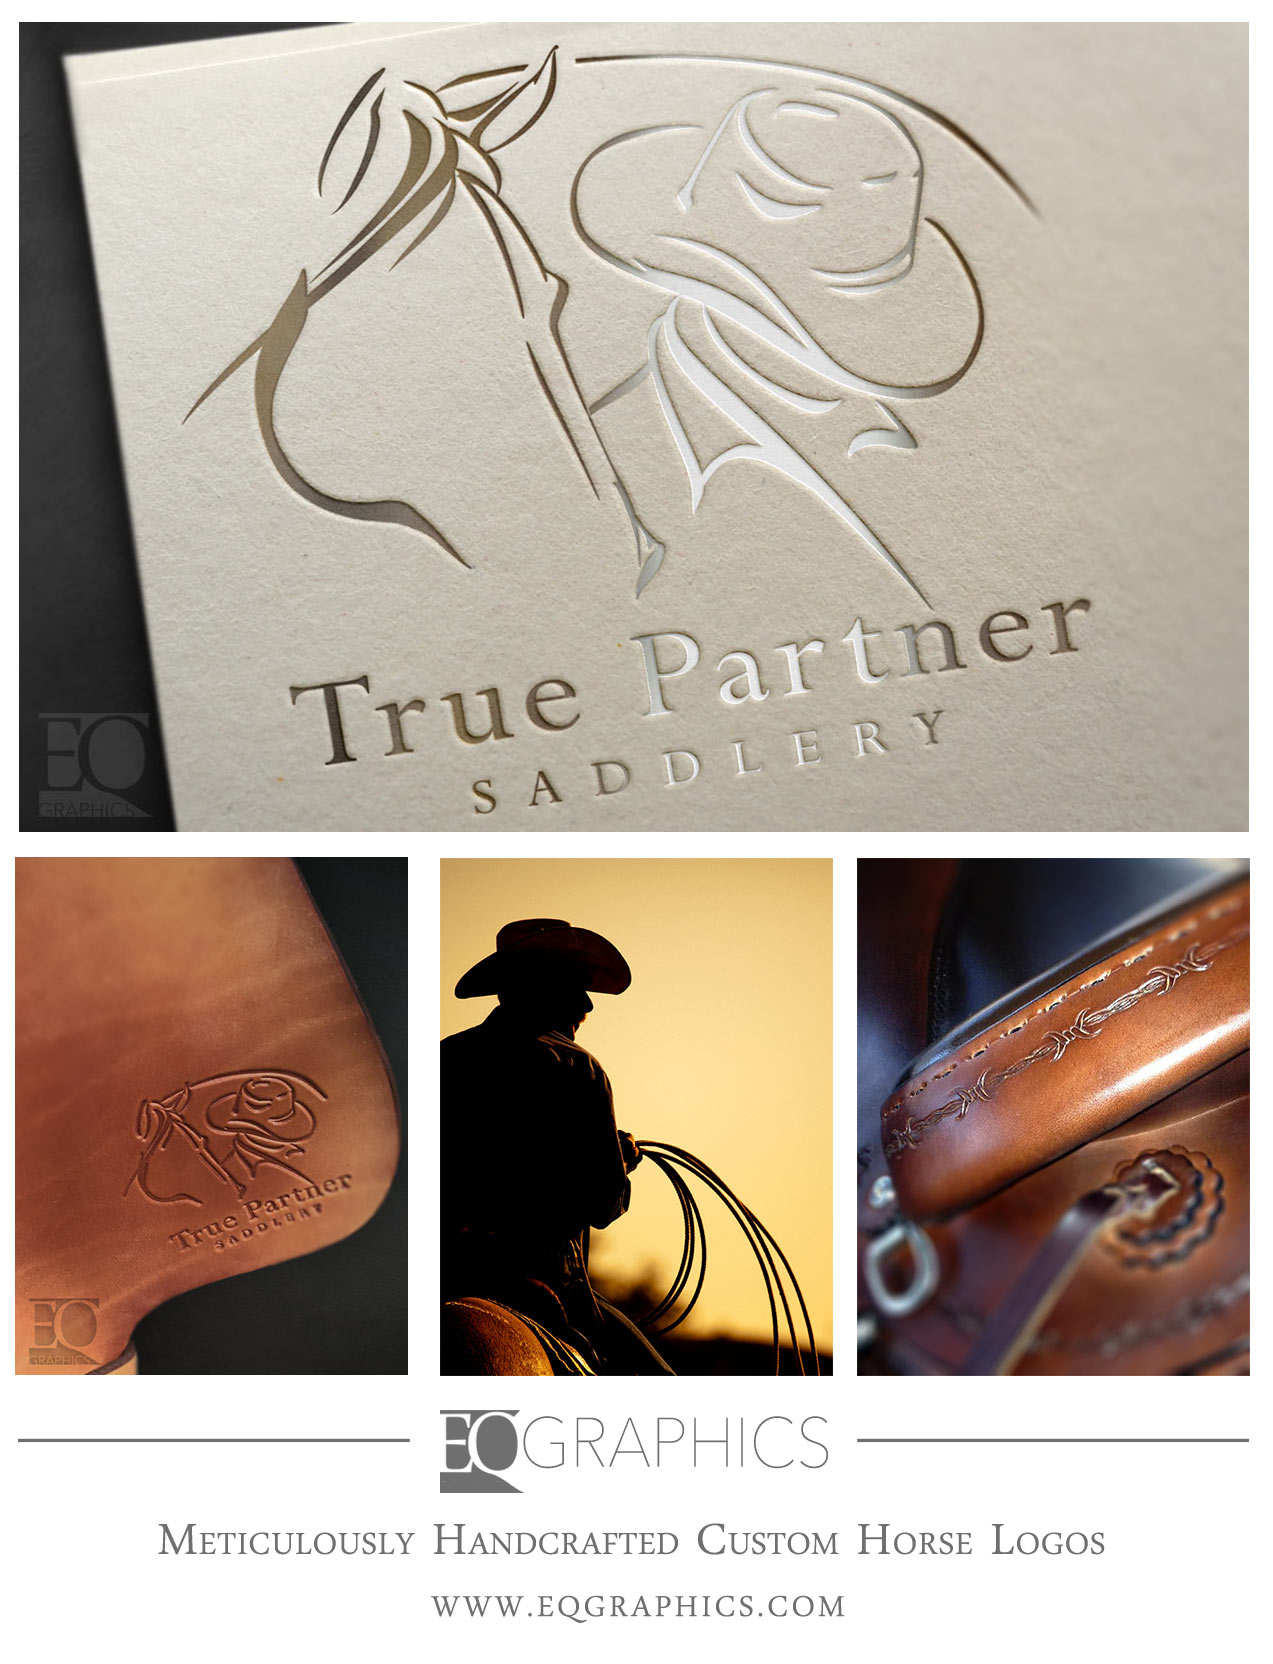 True Partner Saddlery Custom Hand-Drawn Horse Logo Design by EQ Graphics Equine Logos